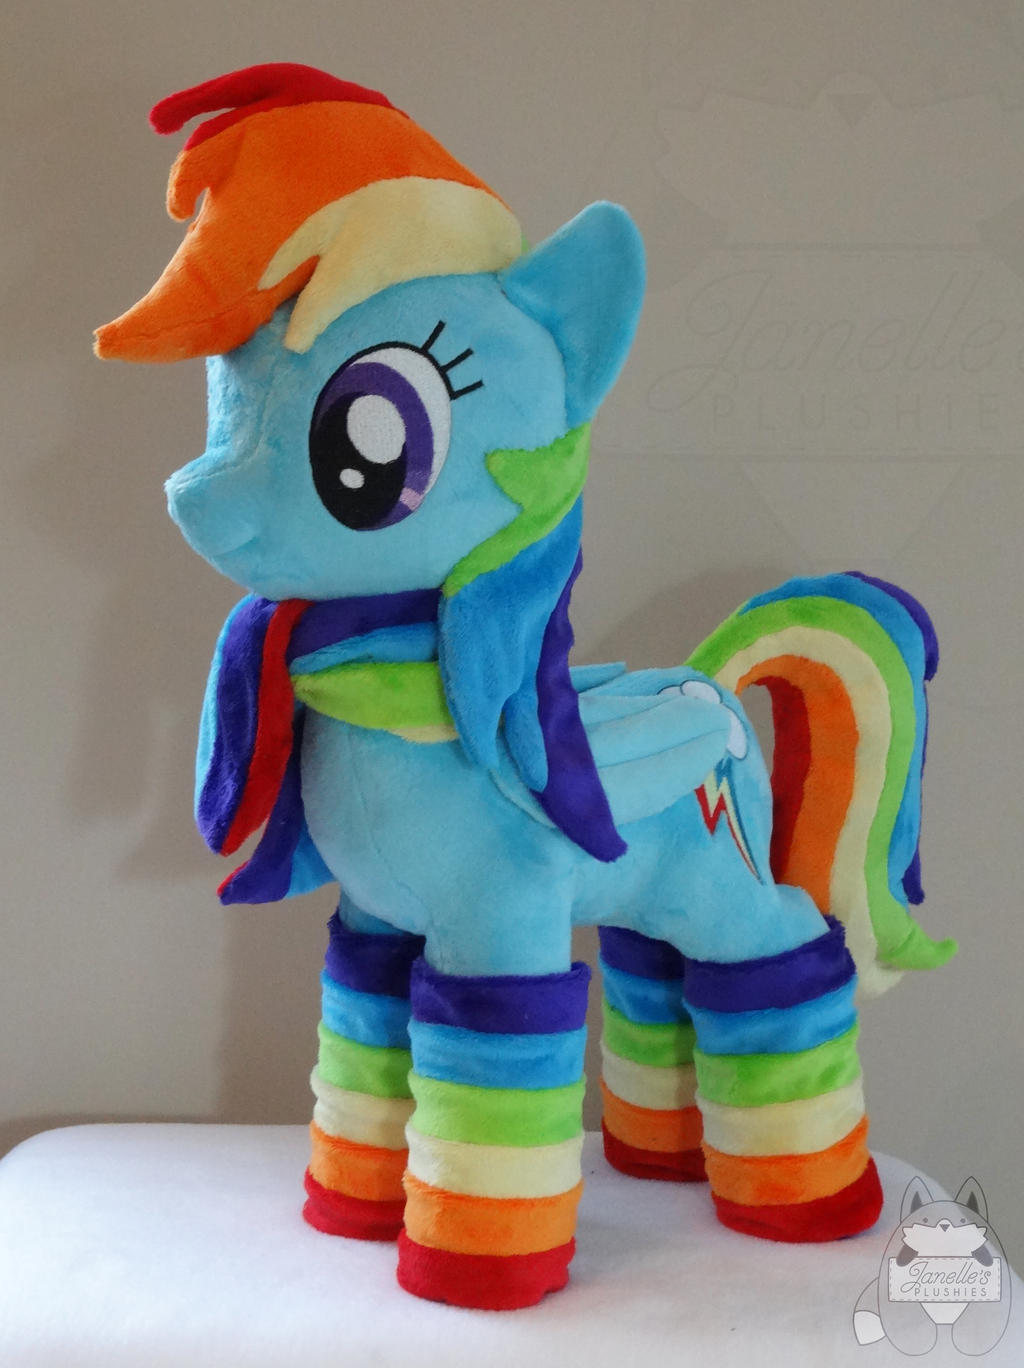 First Dashie plush!